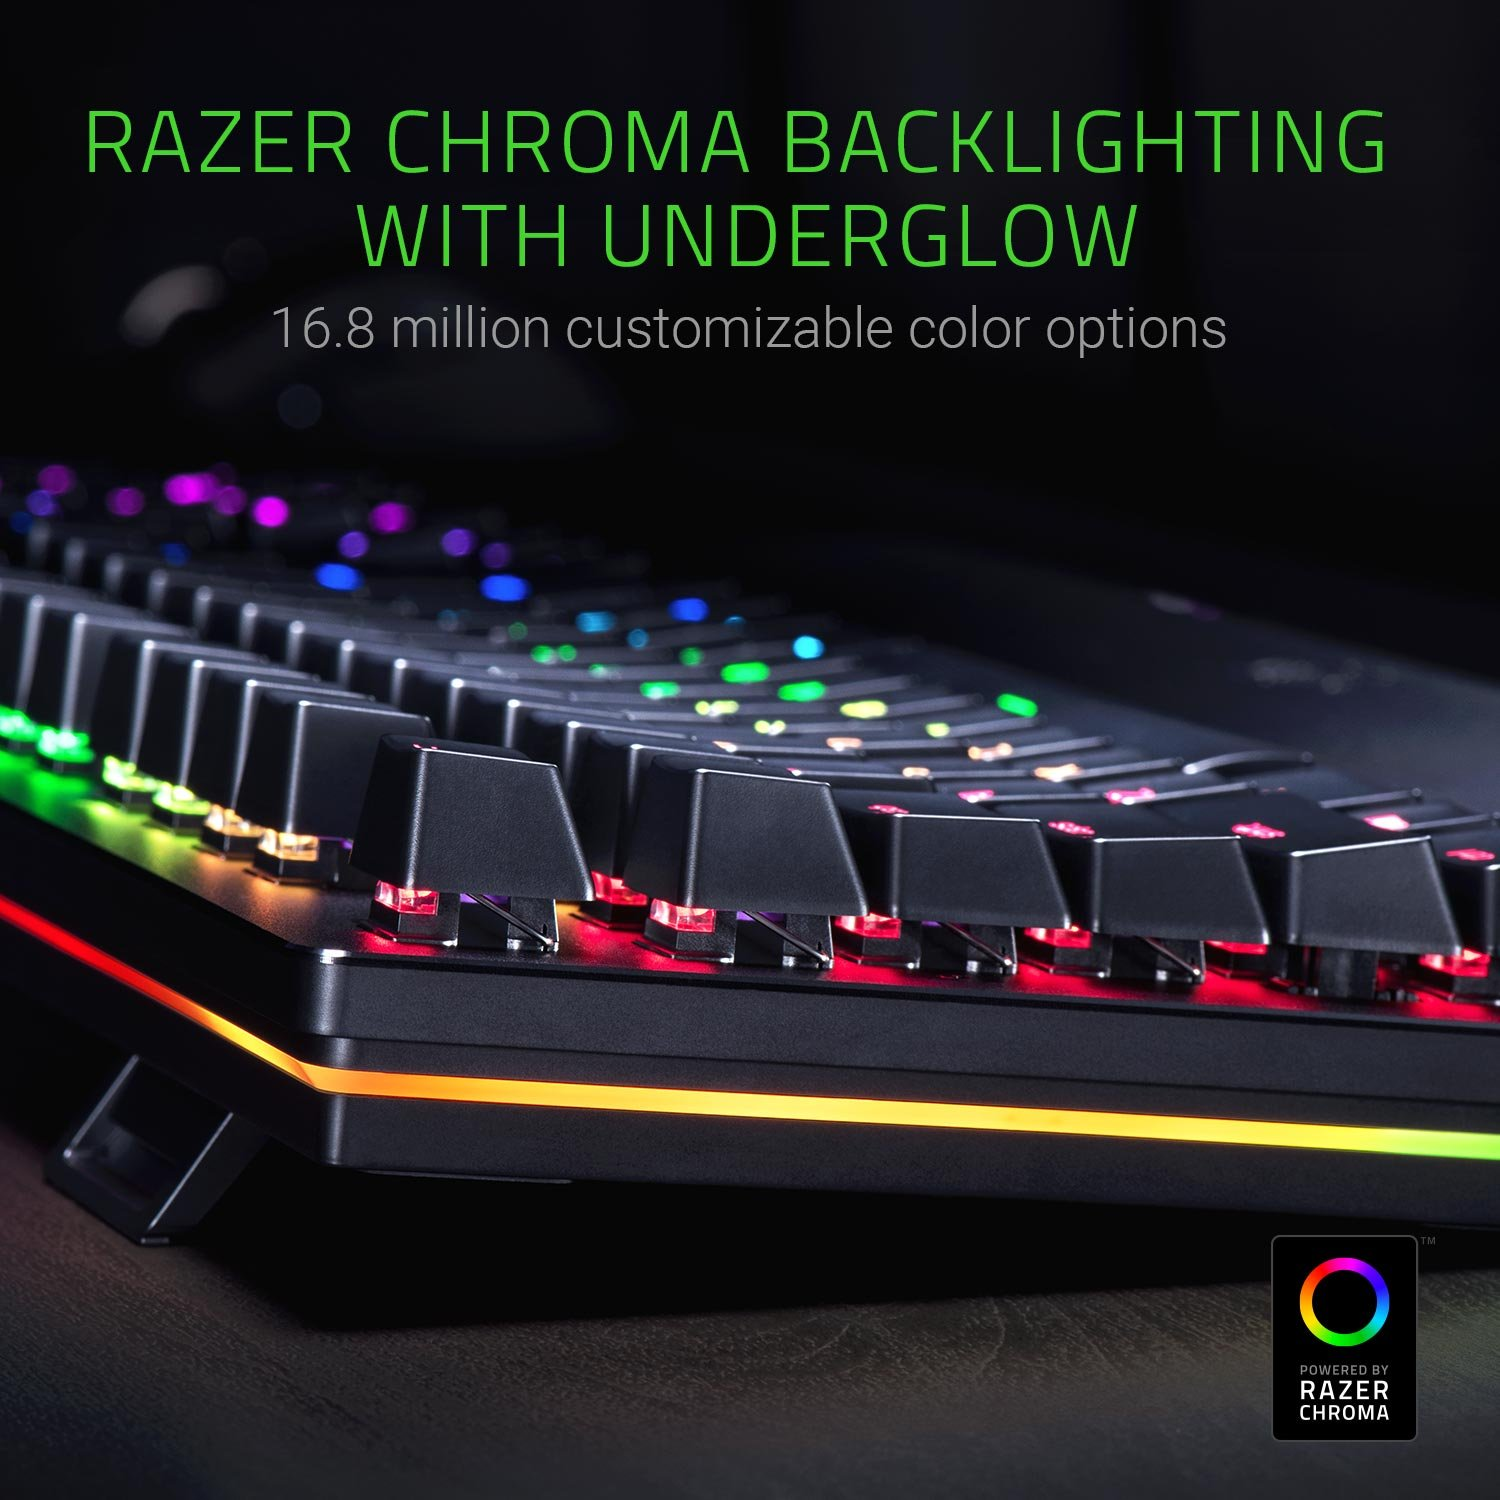 Razer Huntsman Elite Gaming Keyboard: Opto-Mechanical Key Switches -  Instant Actuation - Chroma RGB Lighting - Magnetic Plush Wrist Rest -  Dedicated